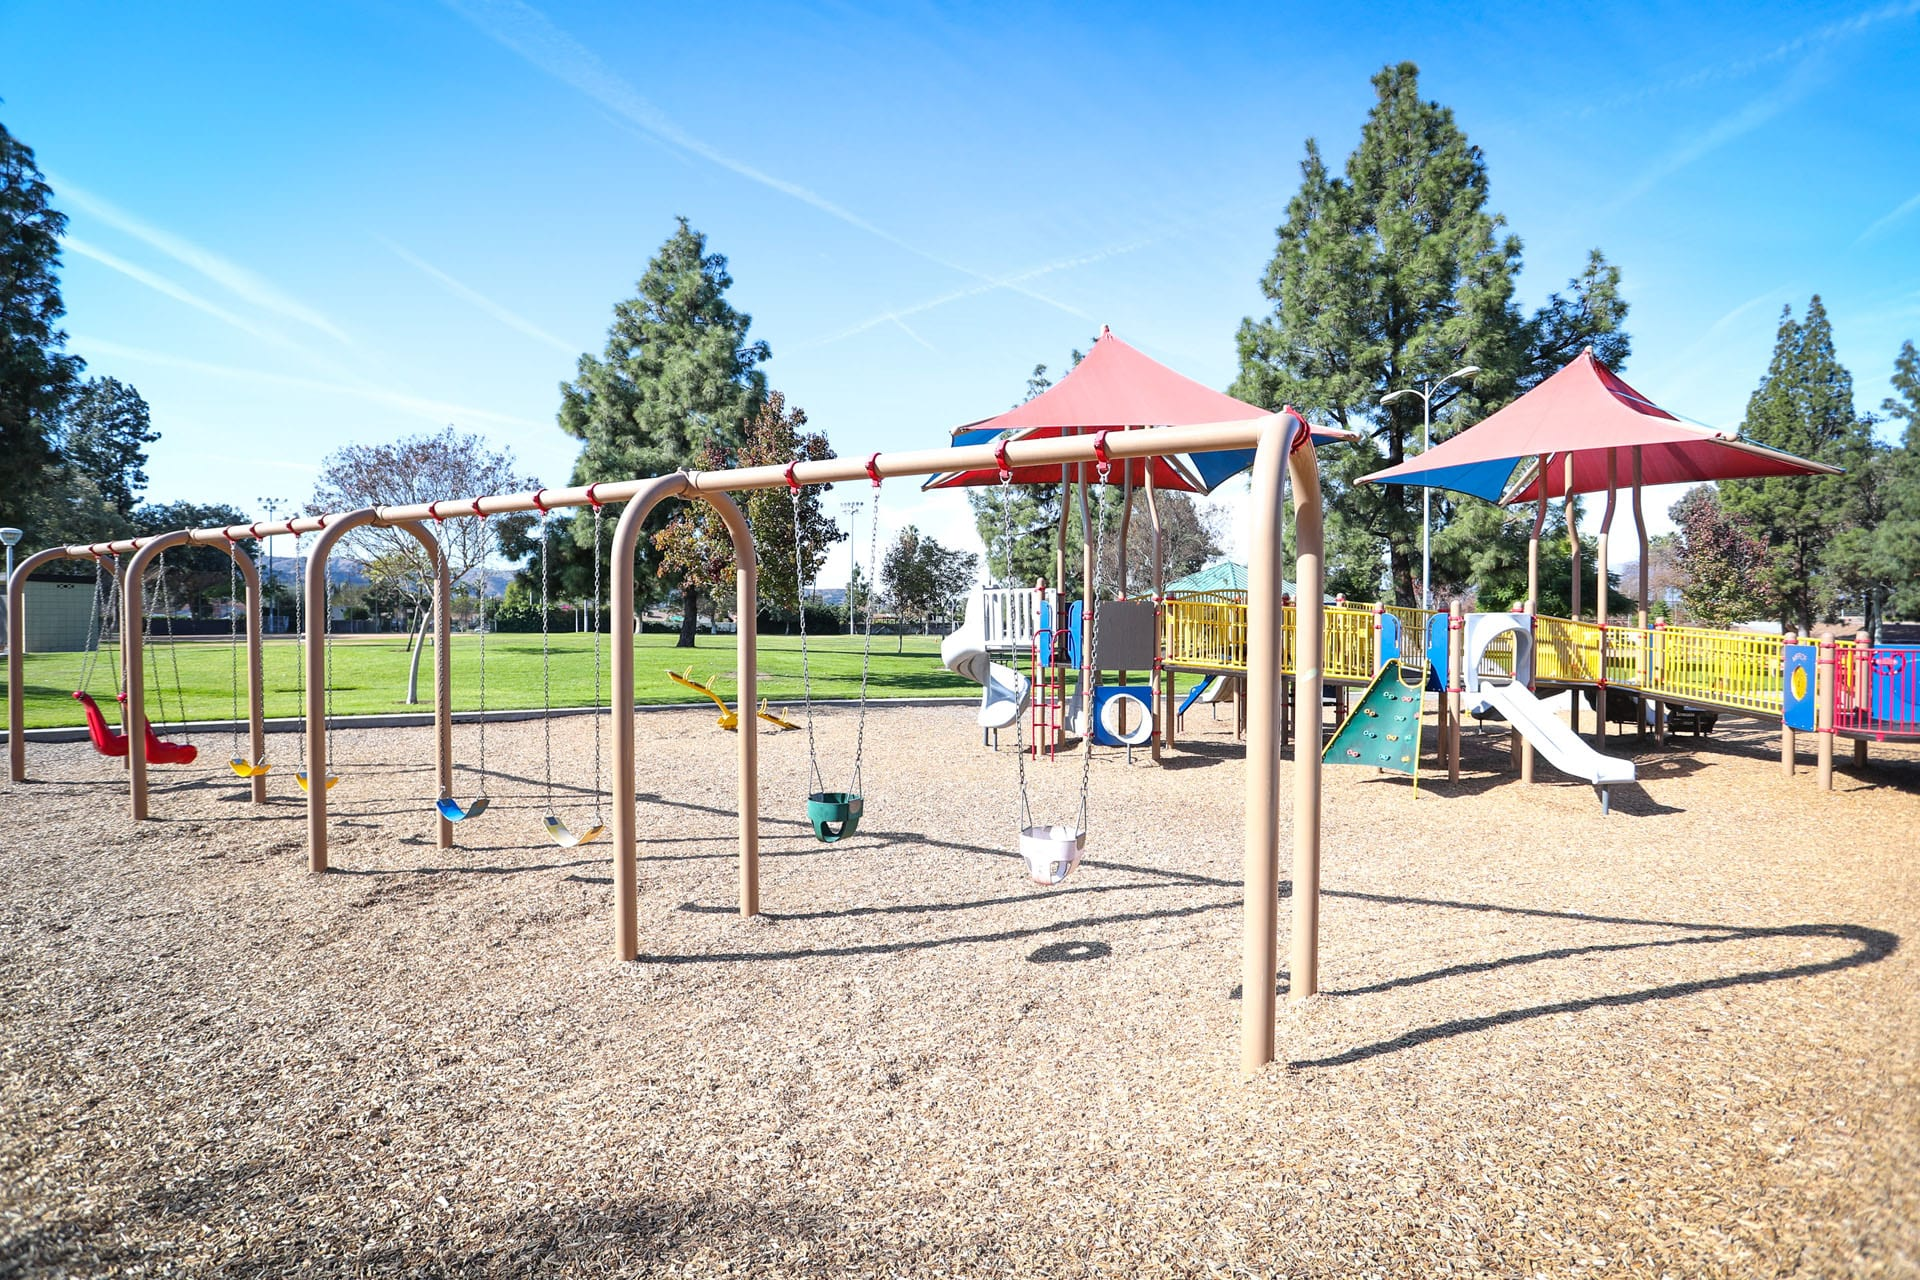 Swings and playground